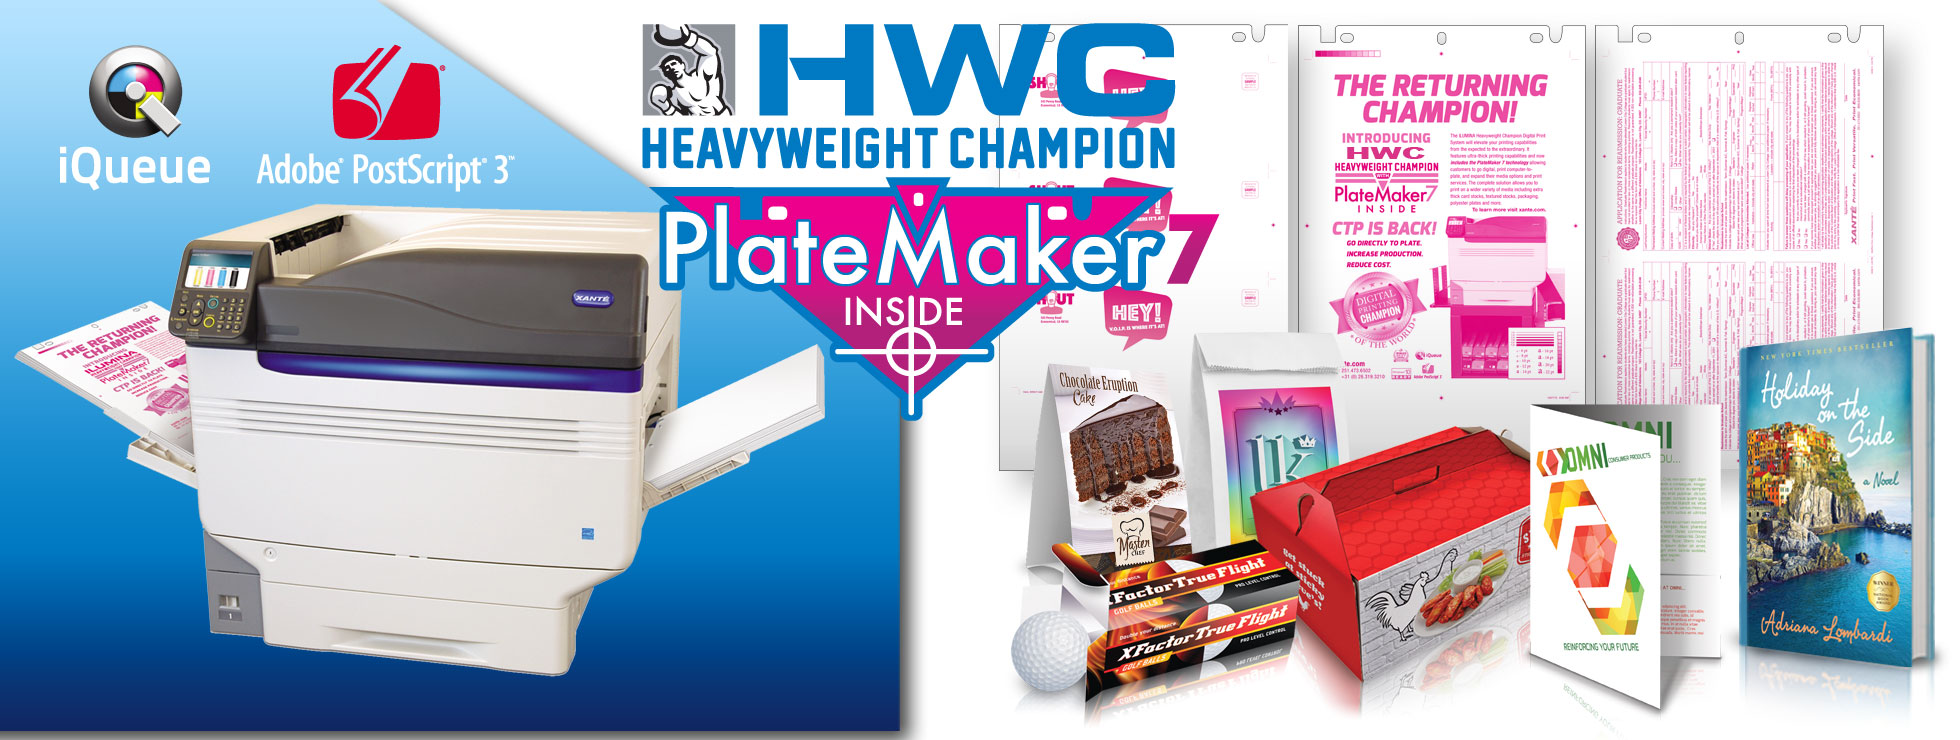 HWC Heavyweight Champion + PlateMaker 7 Inside